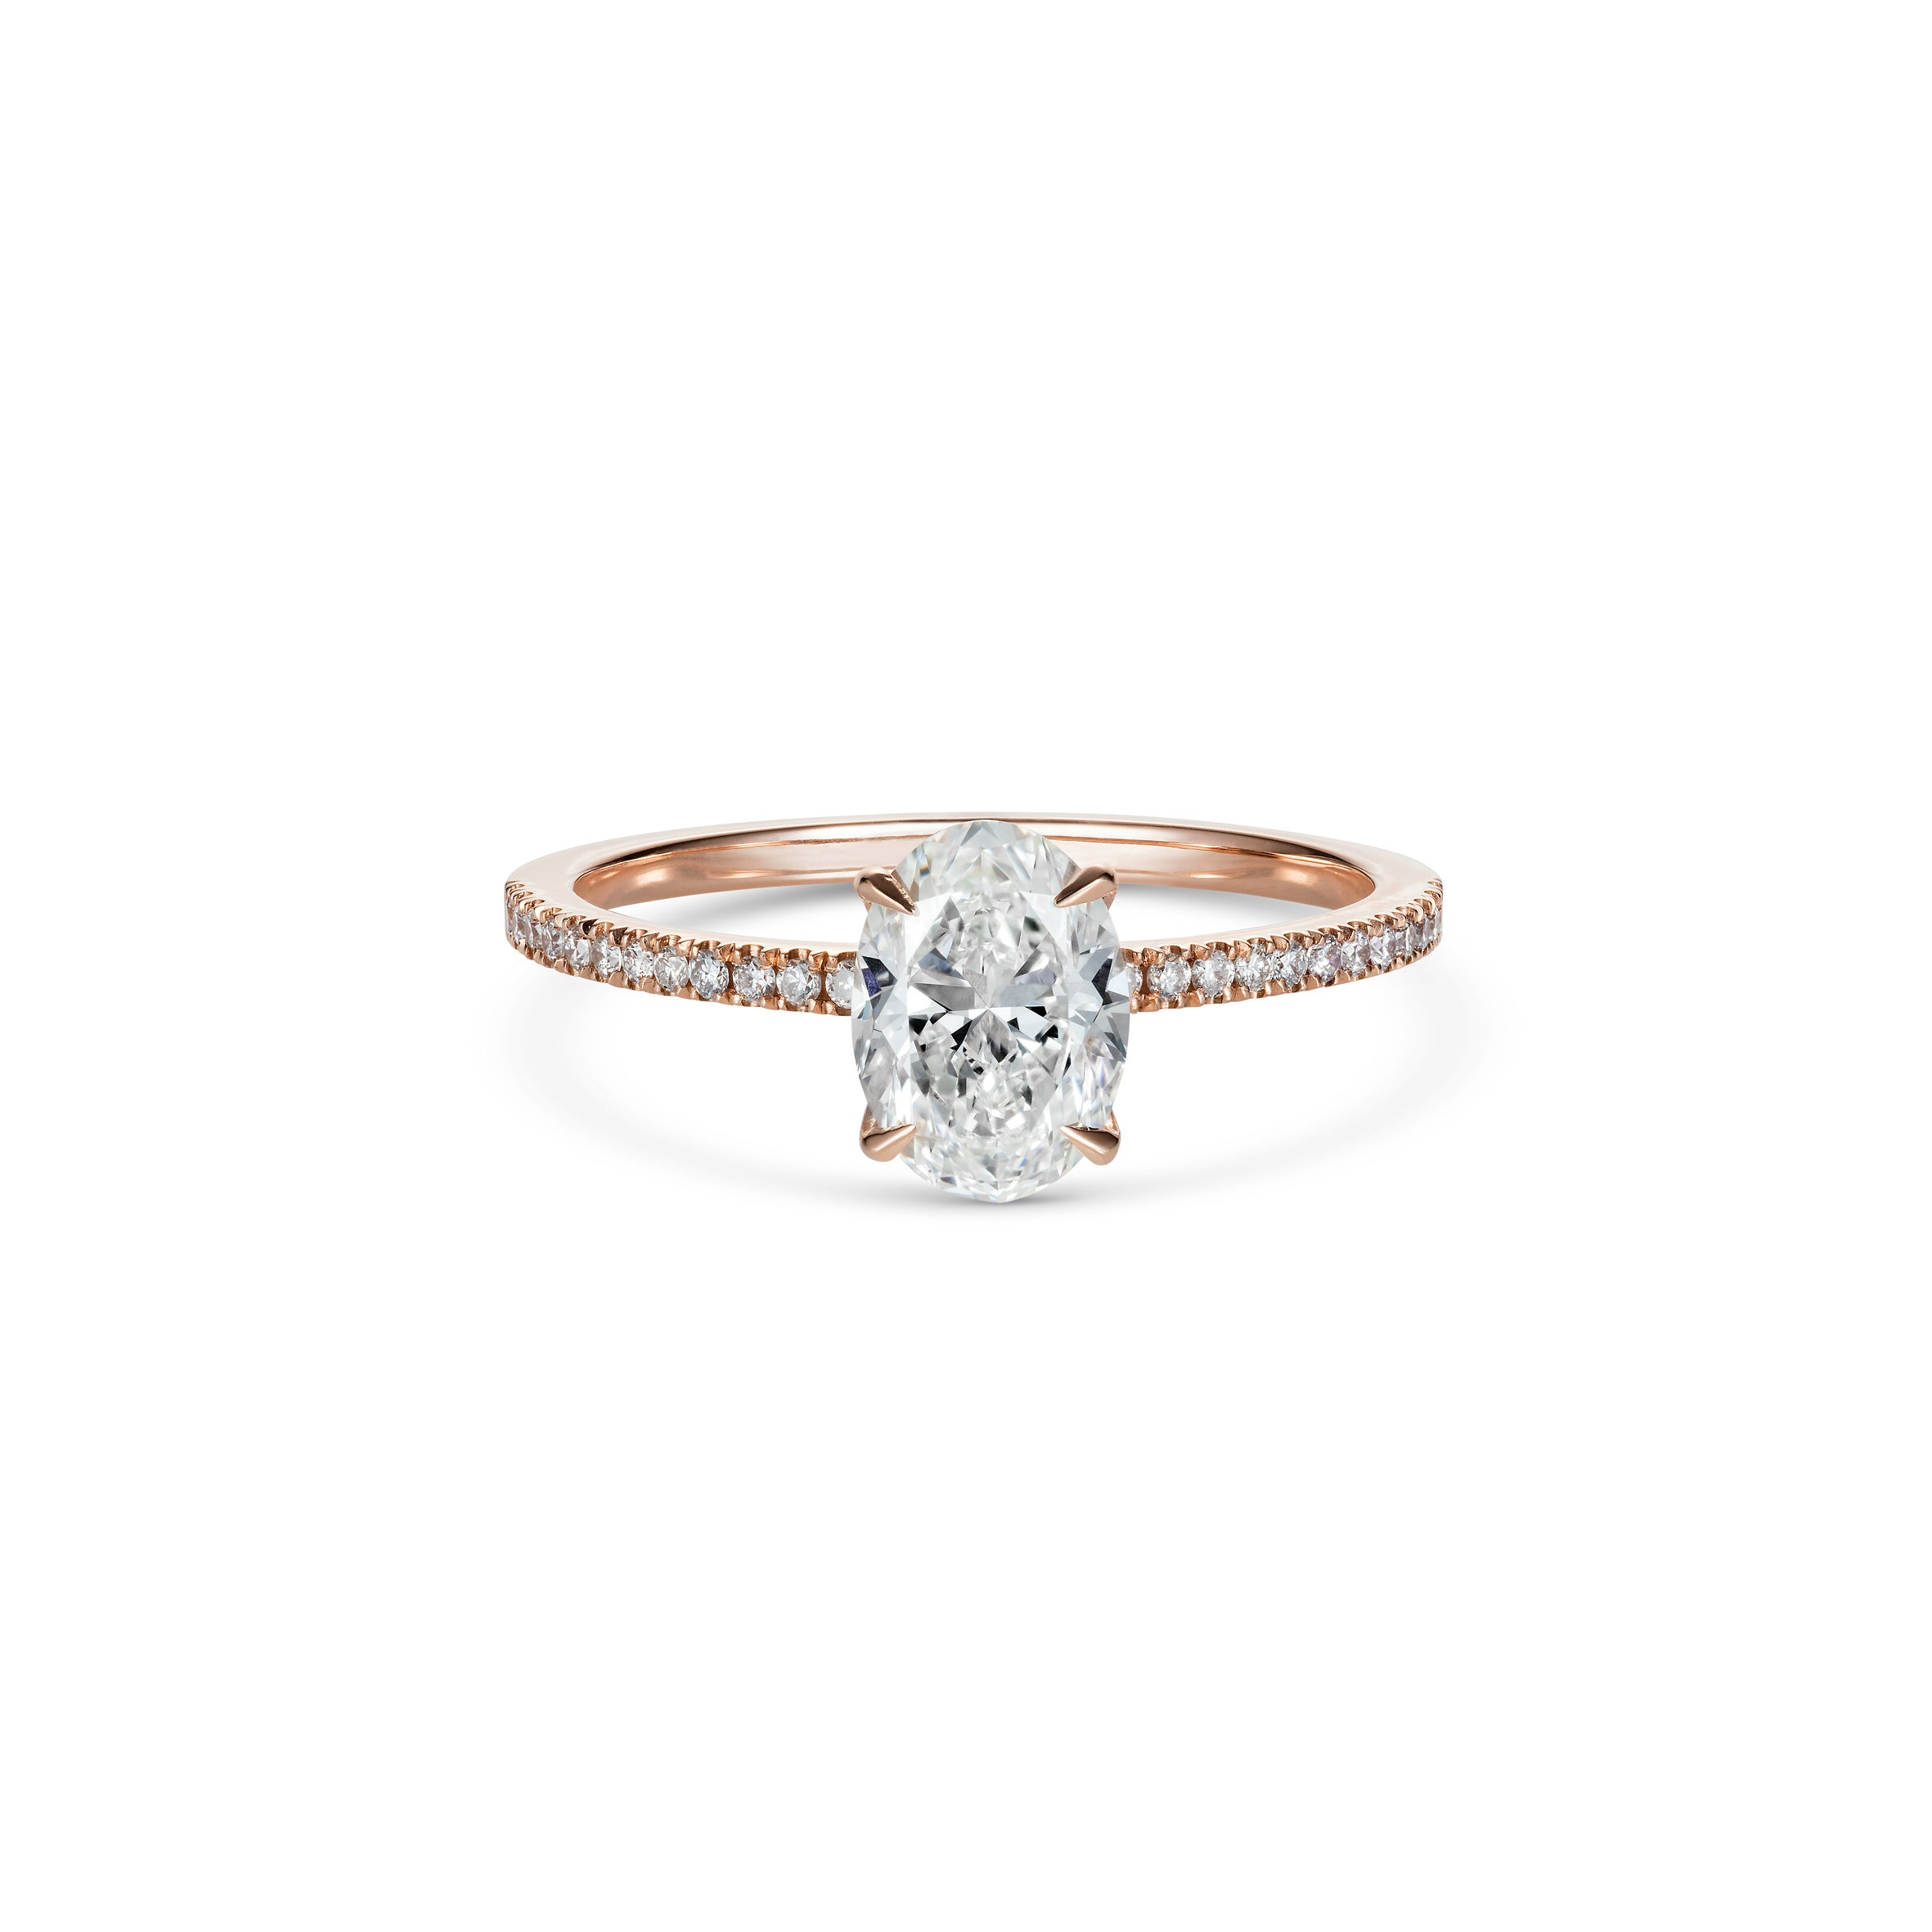 Oval Diamond in 18ct Rose Gold with Micro Pave Diamond Band